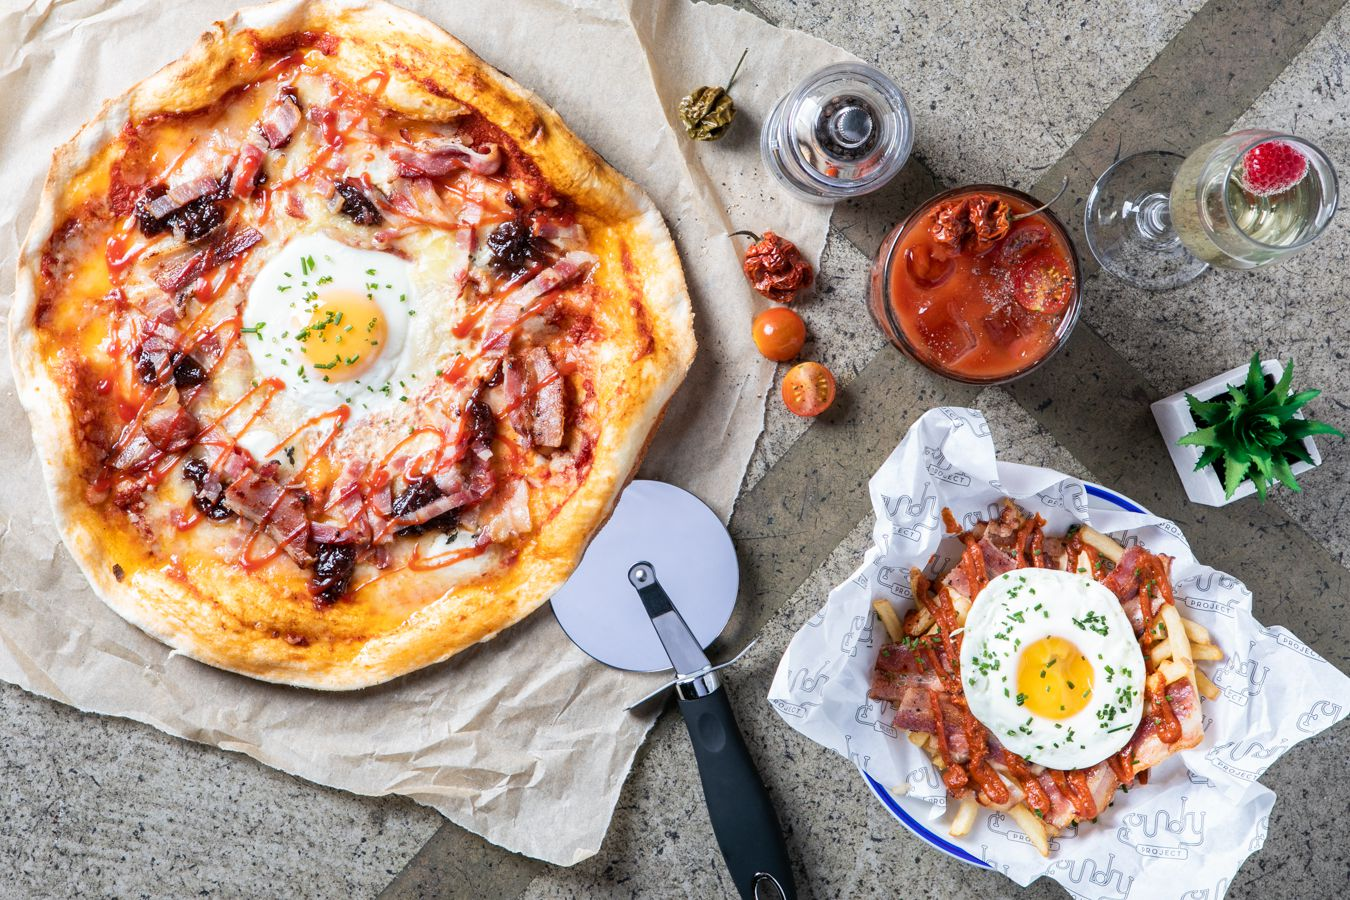 A pizza with a side of chips with bacon topped with fried egg